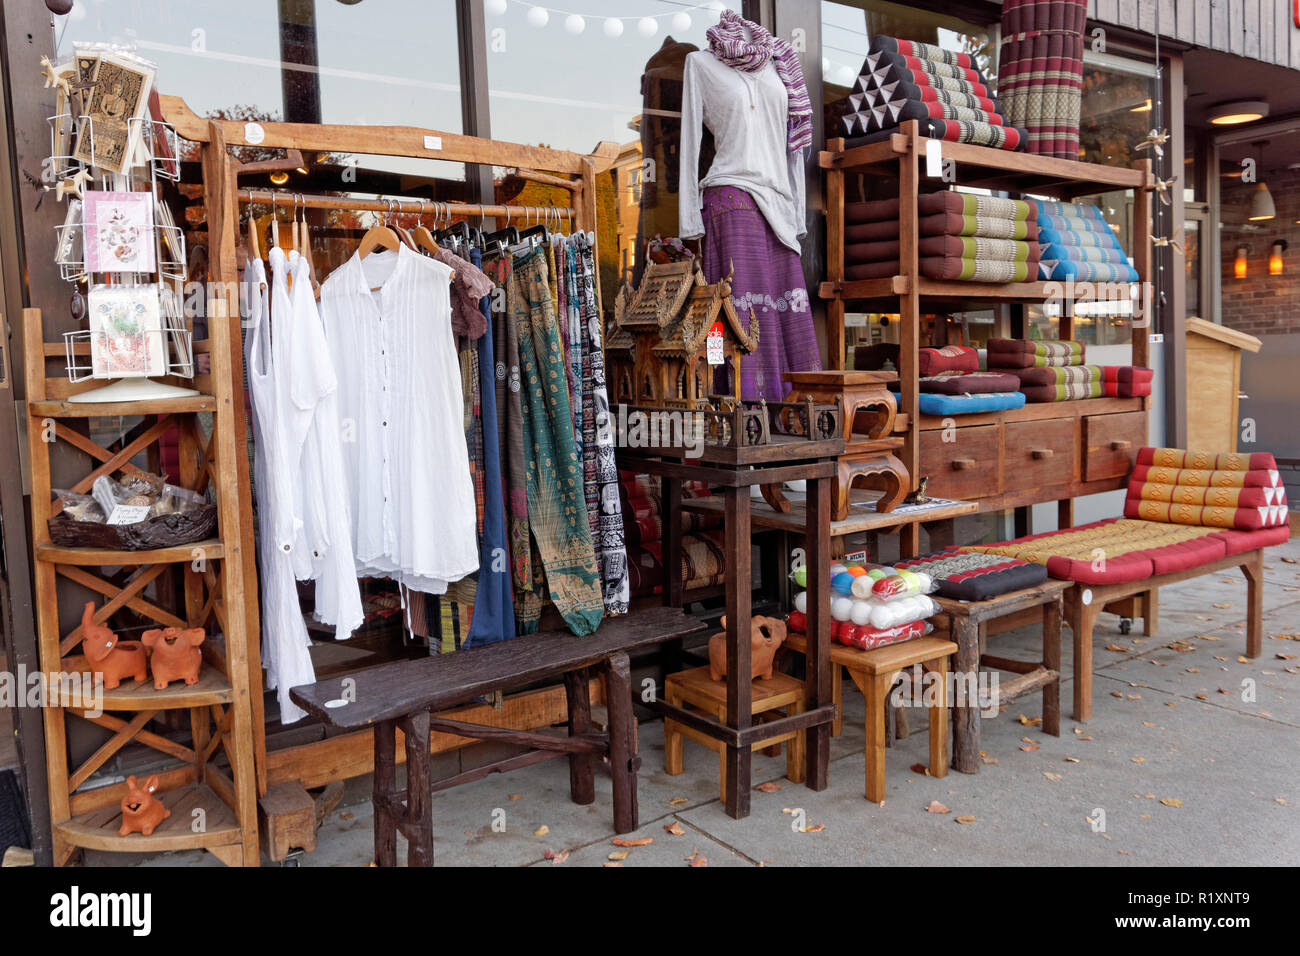 Thai Handicrafts And Clothing For Sale Outside Spirit House Thai